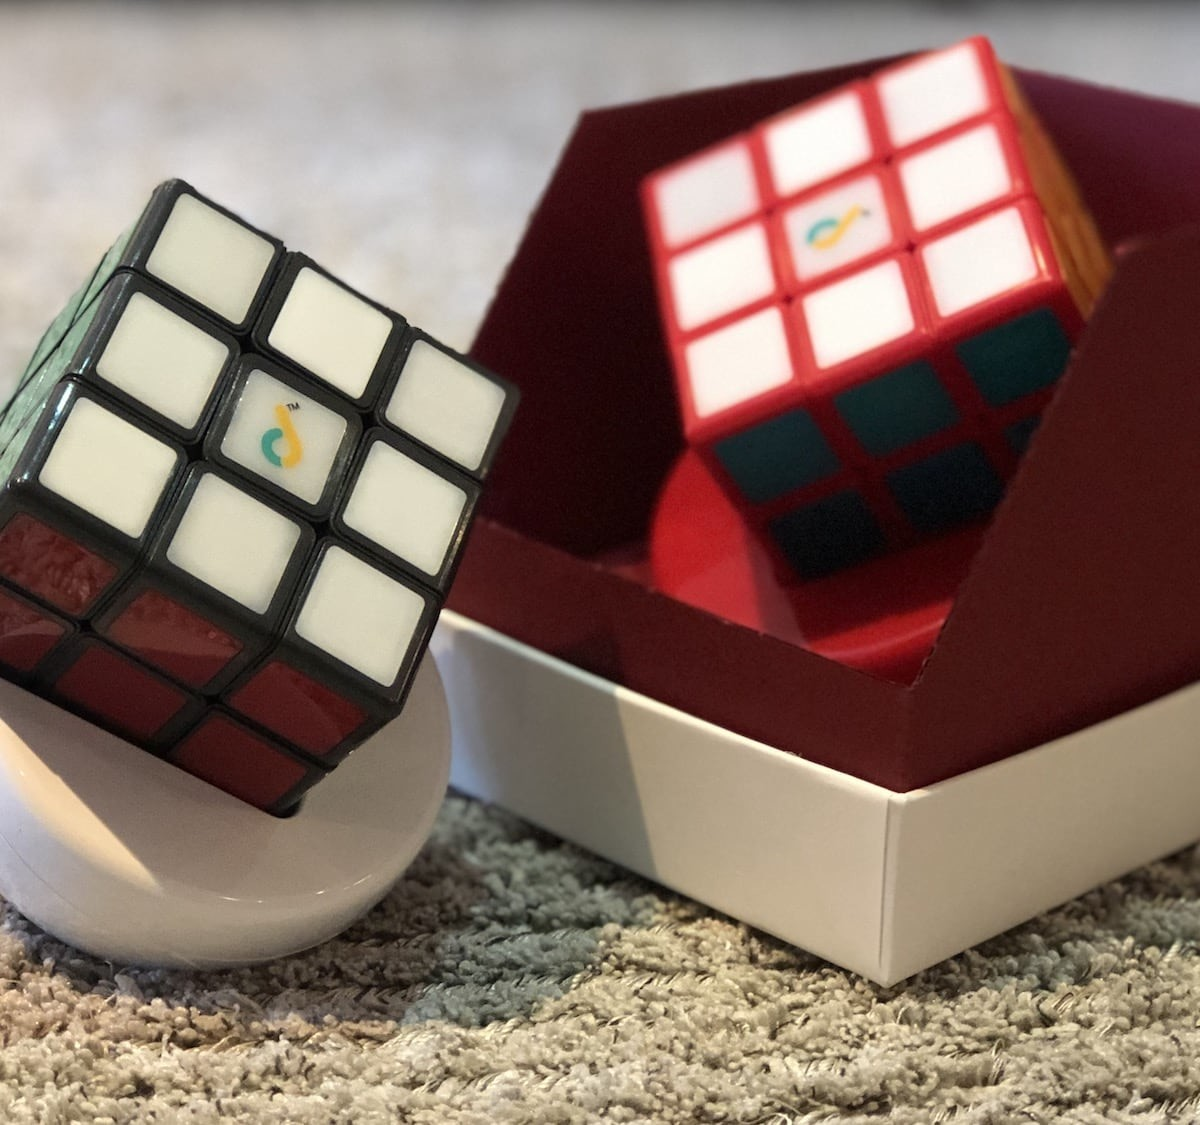 JUNECUBE Gen 1.5 smart Rubik's cube helps you solve the puzzle